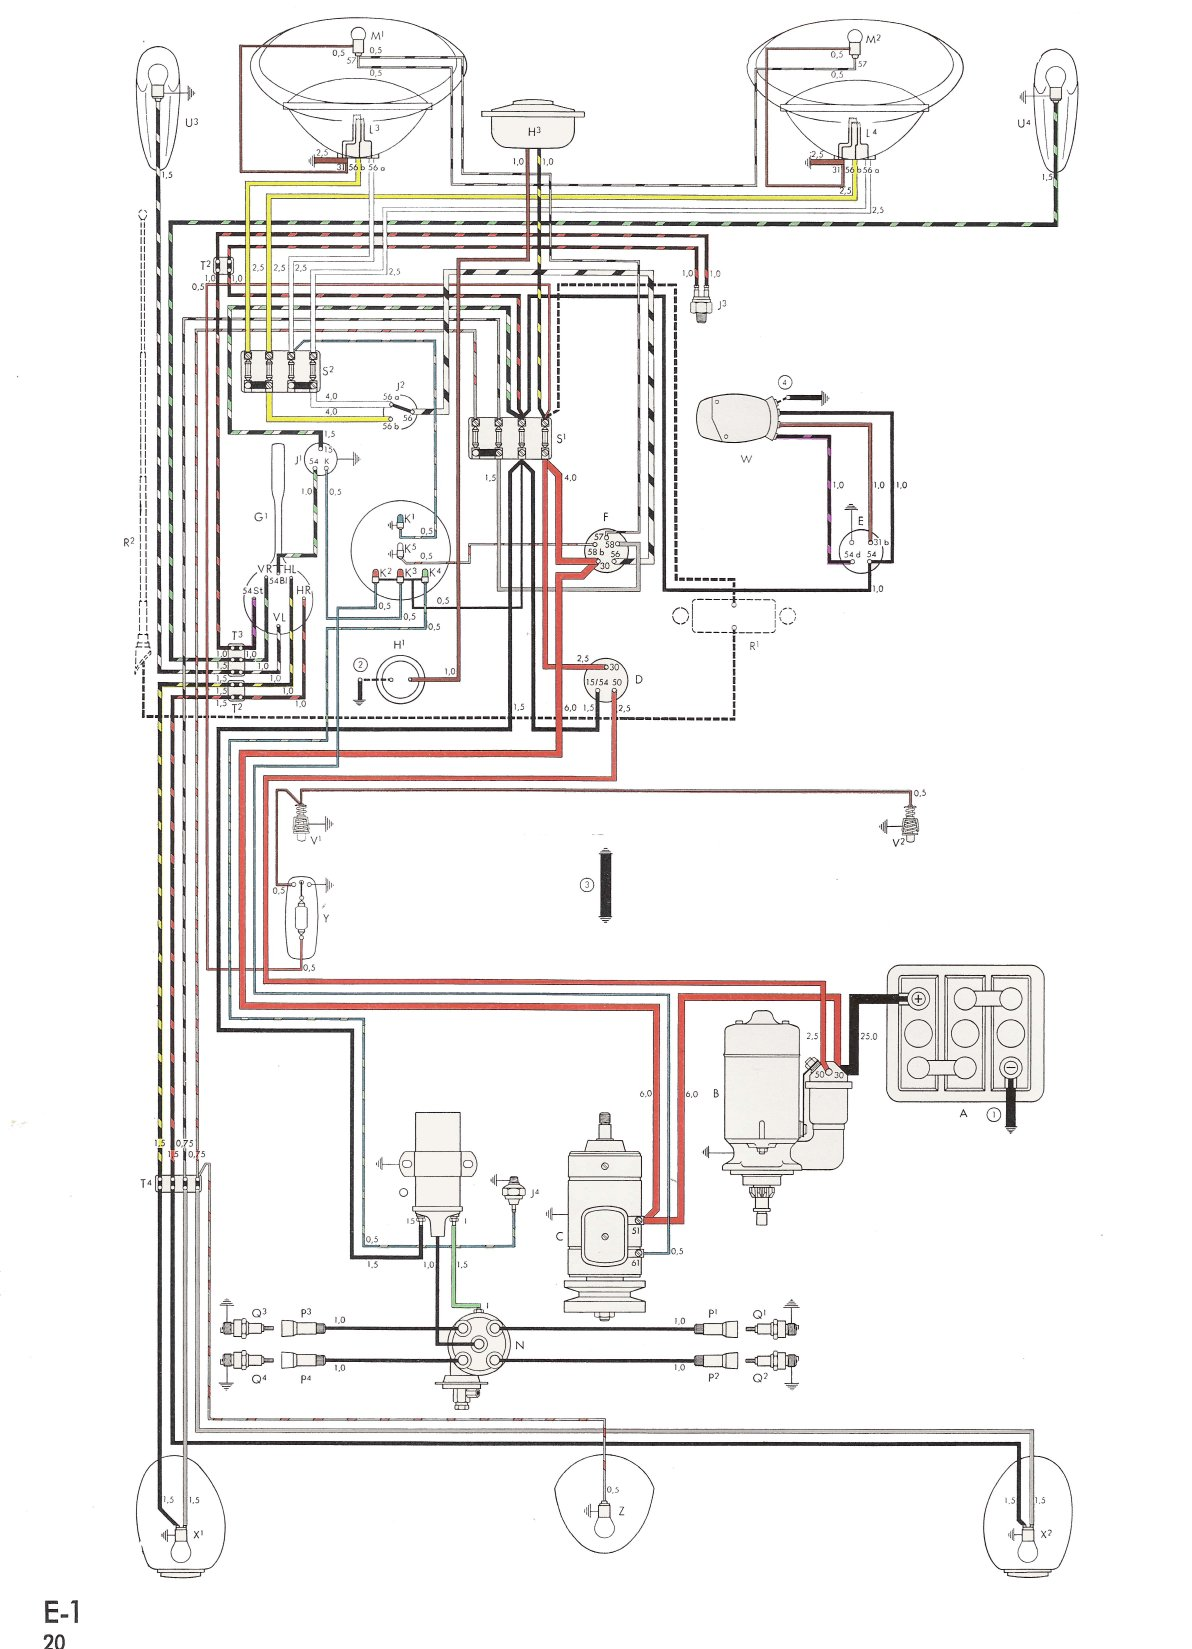 generator wiring diagram 1974 vw thing 9 dhp zionsnowboards de \u2022 Series and Parallel Circuits Diagrams vw super beetle engine wiring diagram vw free engine 1974 volkswagen beetle wiring diagram 74 vw thing wiring schematic